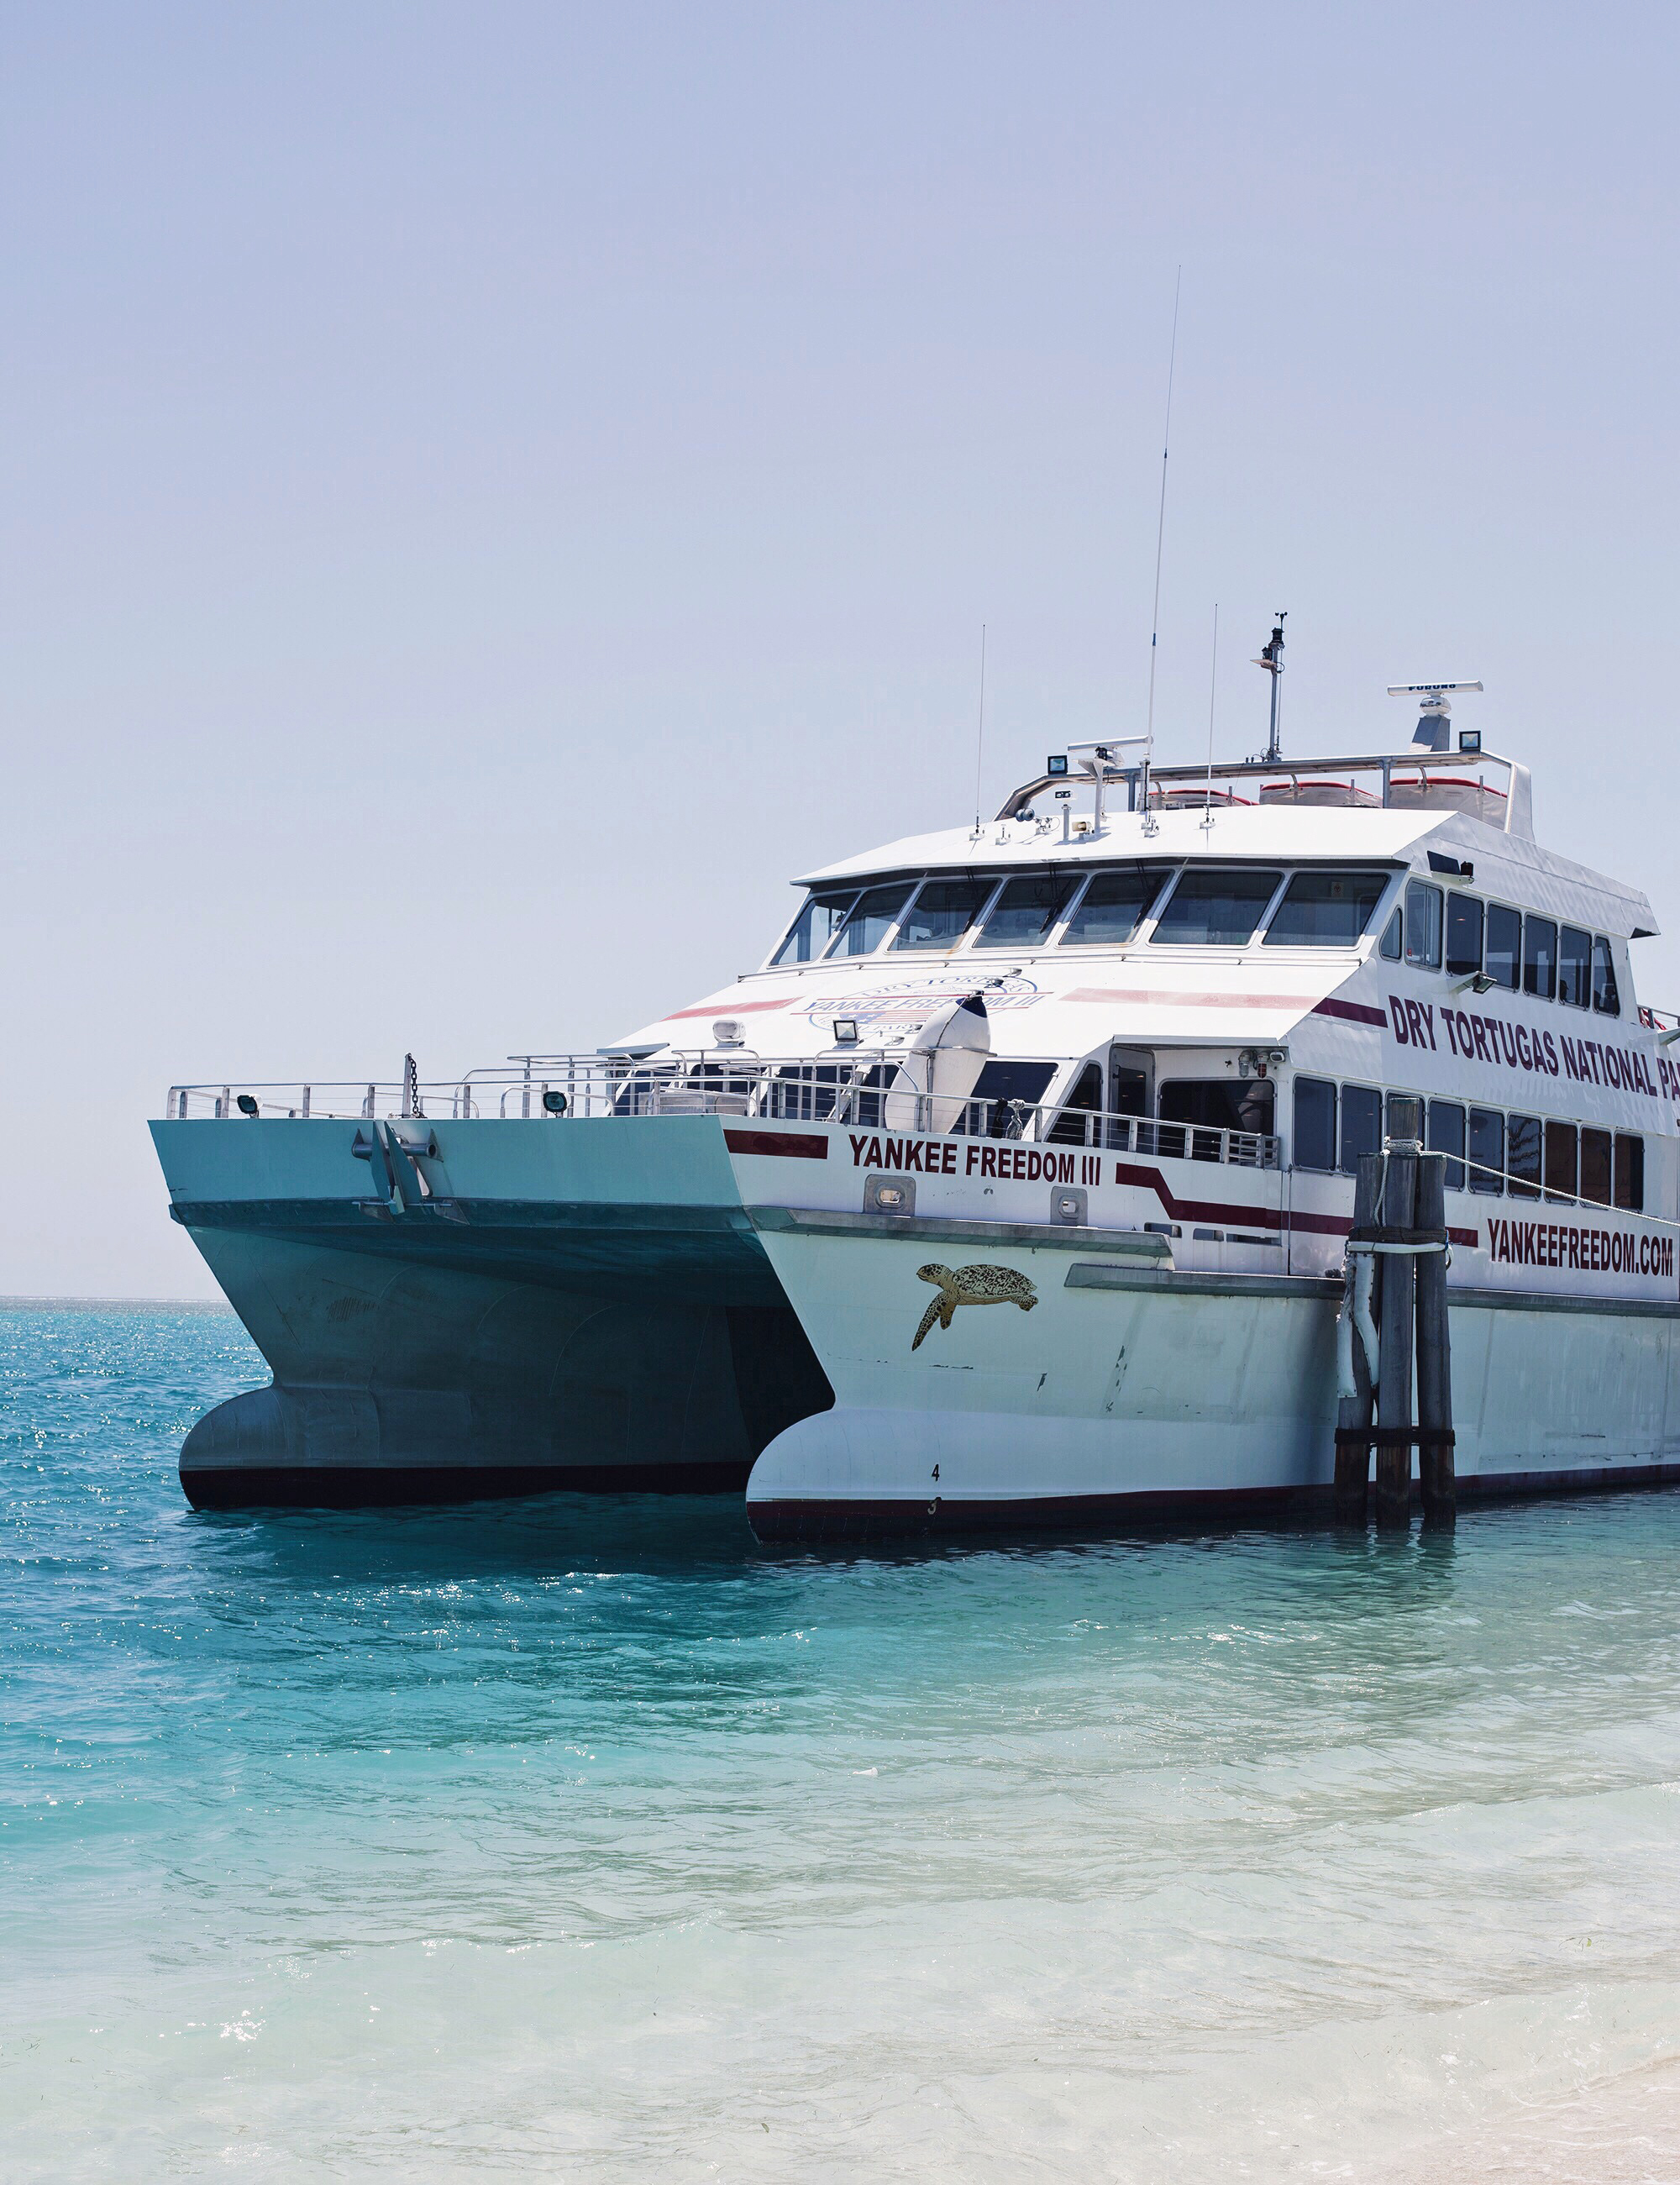 Dry Tortugas Ferry Ride